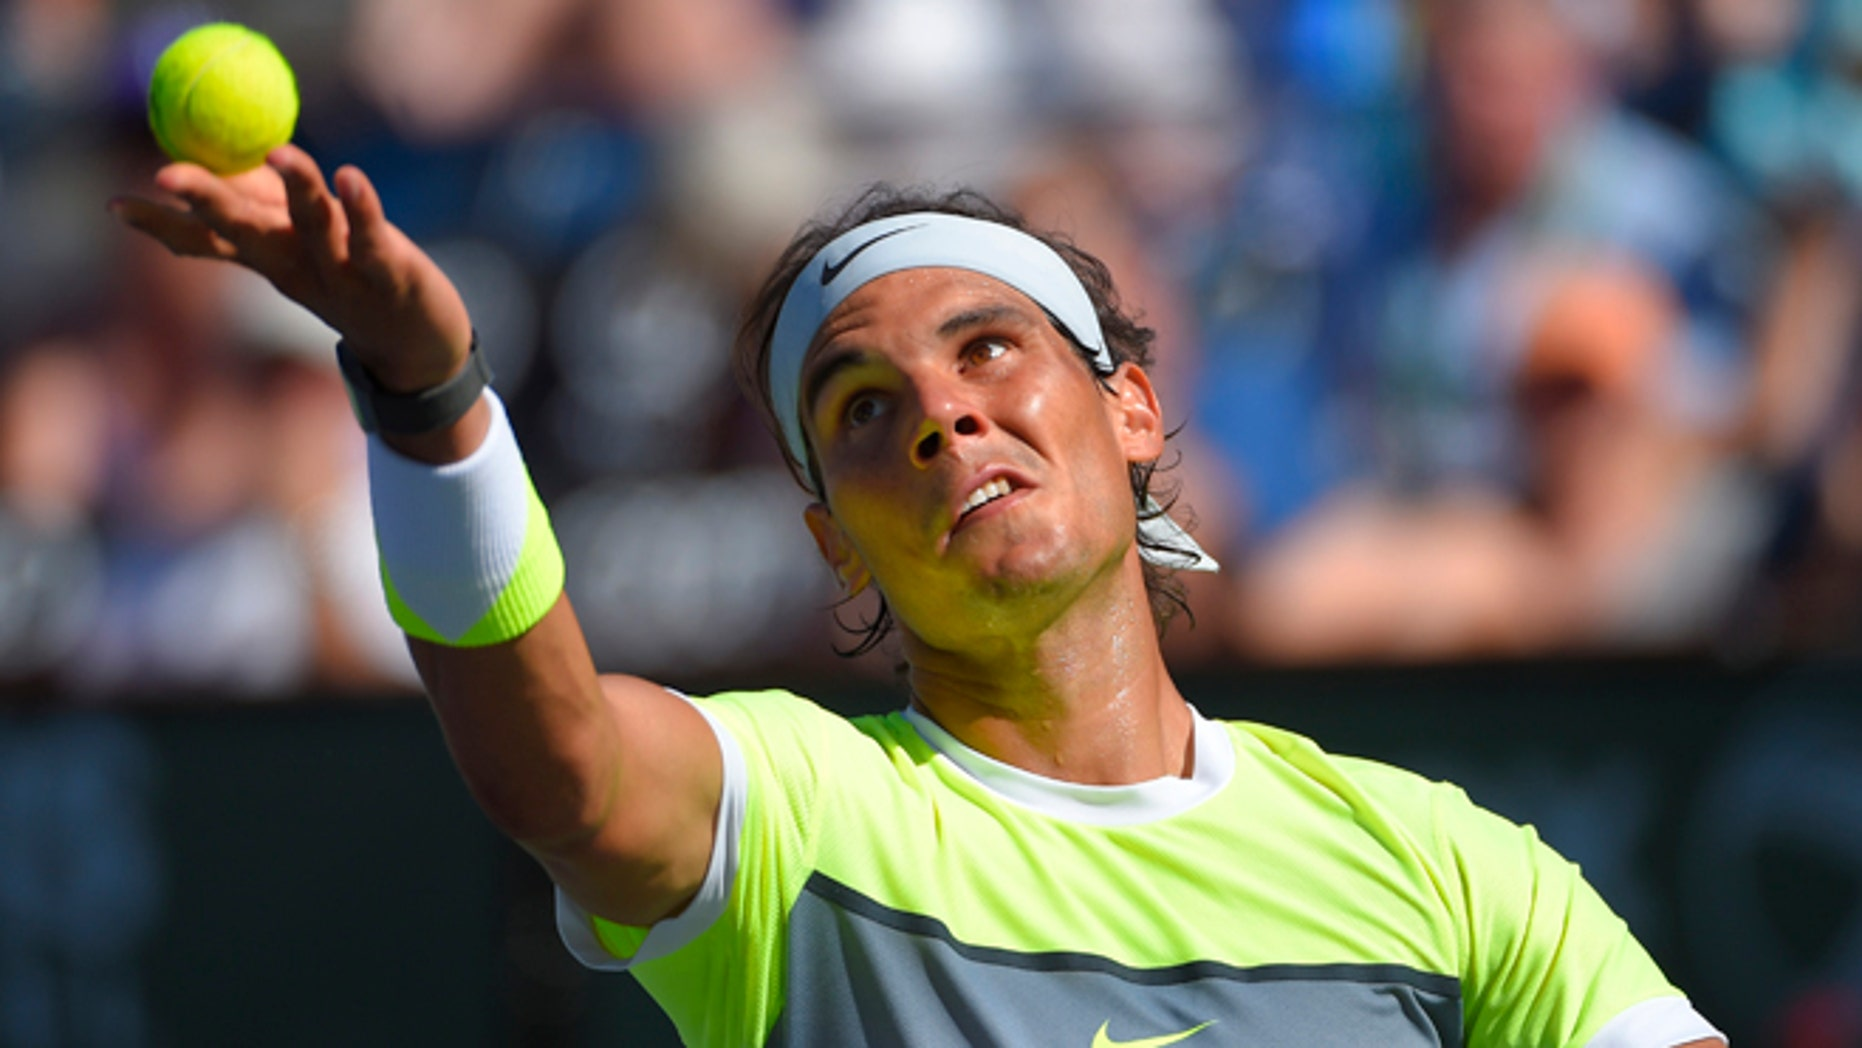 Rafael Nadal, of Spain, serves to Milos Raonic, of Canada, during their match at the BNP Paribas Open tennis tournament, Friday, March 20, 2015 in Indian Wells, Calif. (AP Photo/Mark J. Terrill)